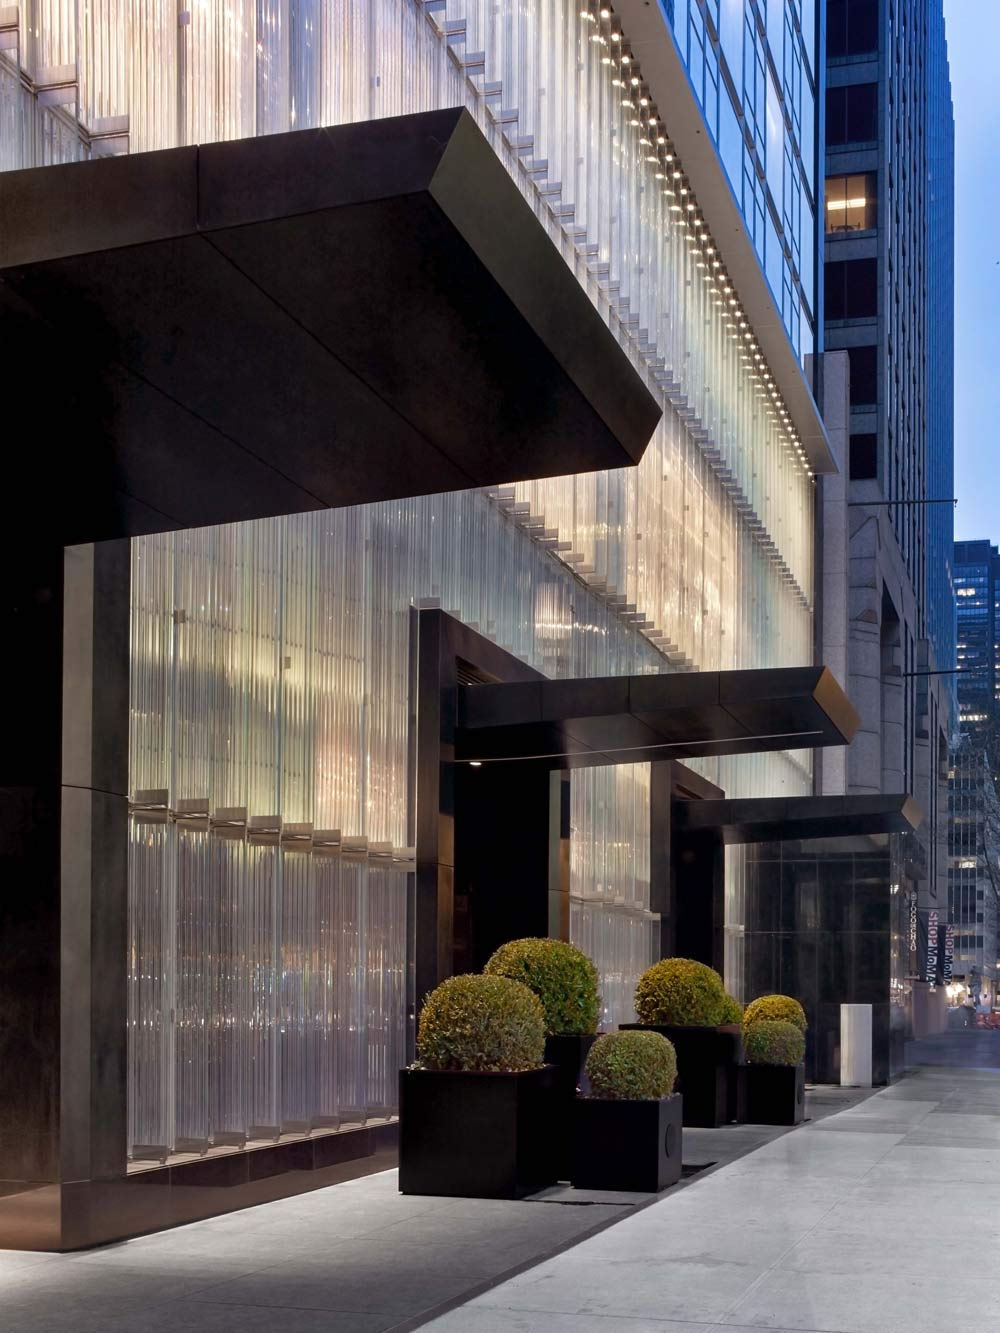 Baccarat hotel new york new york ny five star alliance - Baccarat hotel new york ...